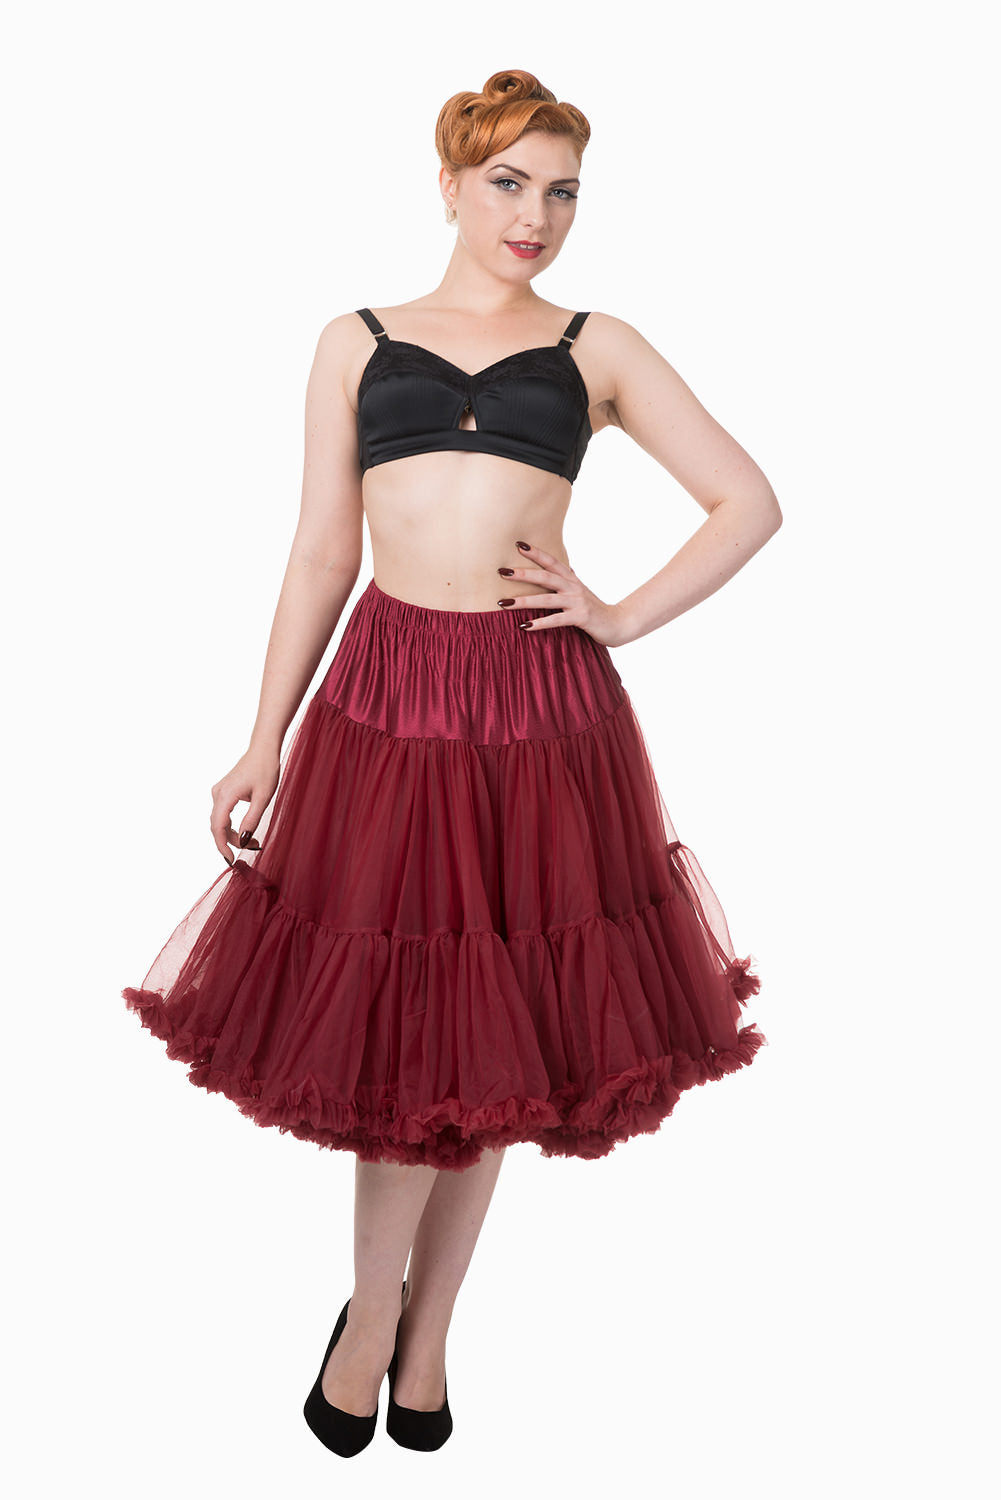 "Dancing Days Lifeforms 50s Style 25""-27"" Long Petticoat In Burgundy Red; Dancing Days; Lifeforms Petticoat; 50s Style; 25""-27"" Long Petticoat; Burgundy Red"